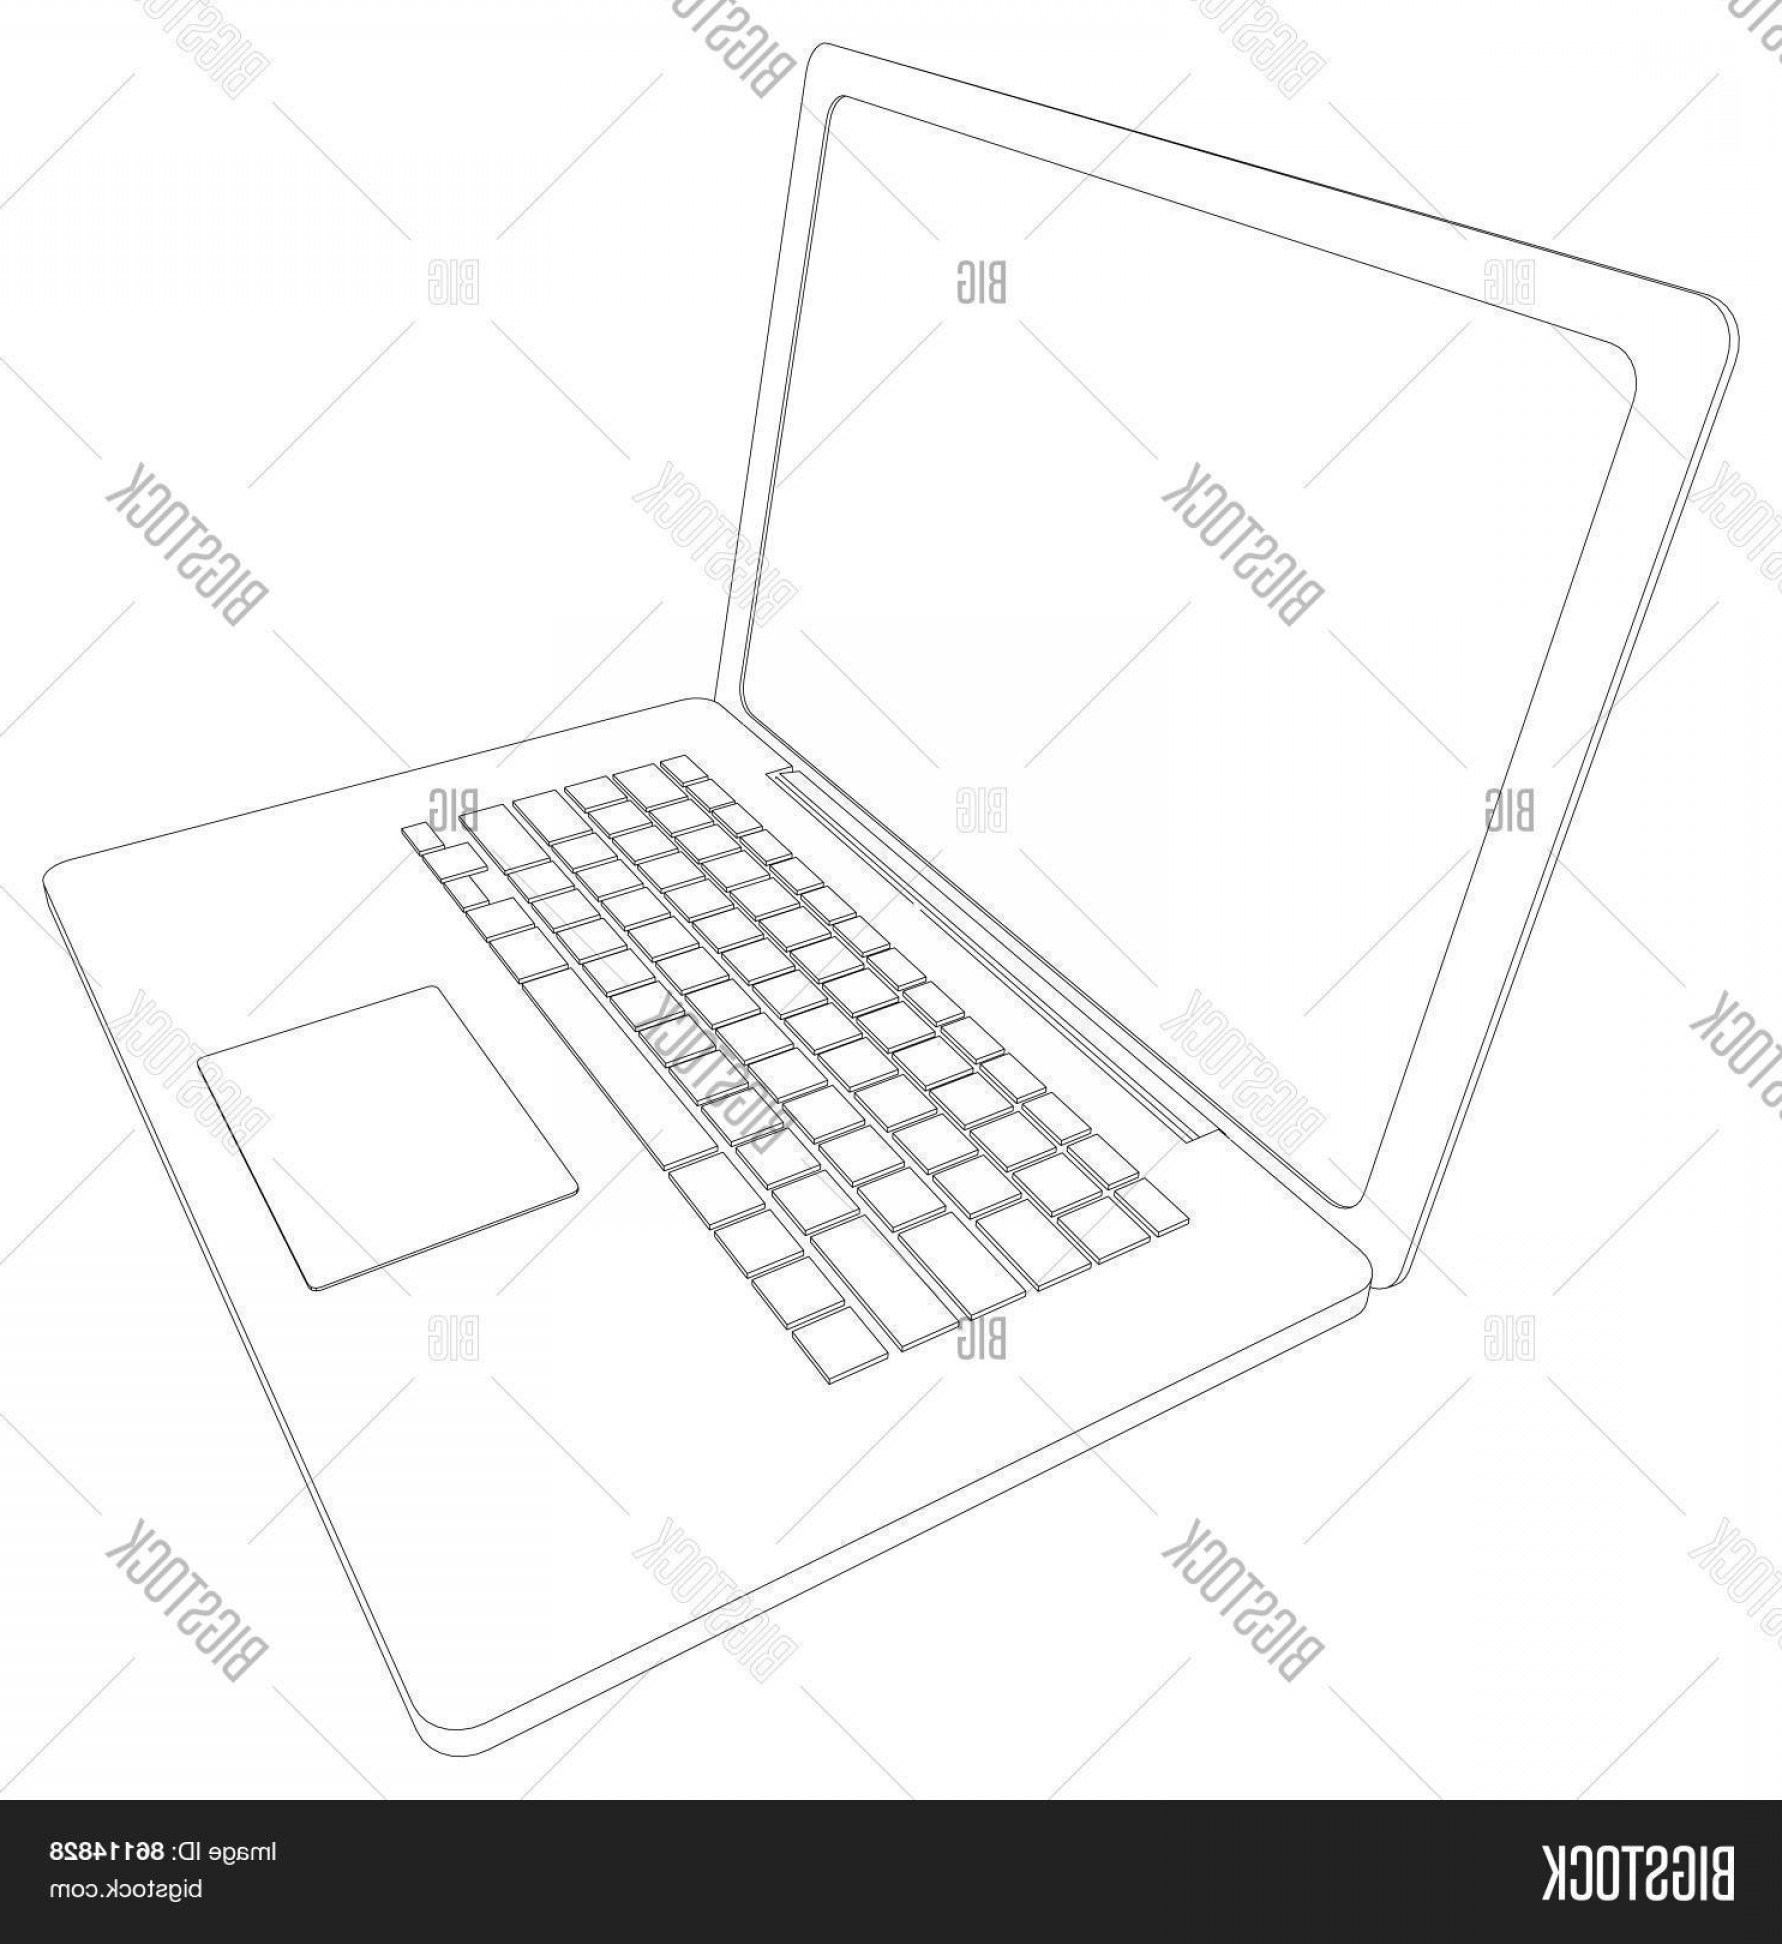 Laptop Vector Frame: Stock Vector Drawing Of Wire Frame Open Laptop Perspective View Vector Illustration